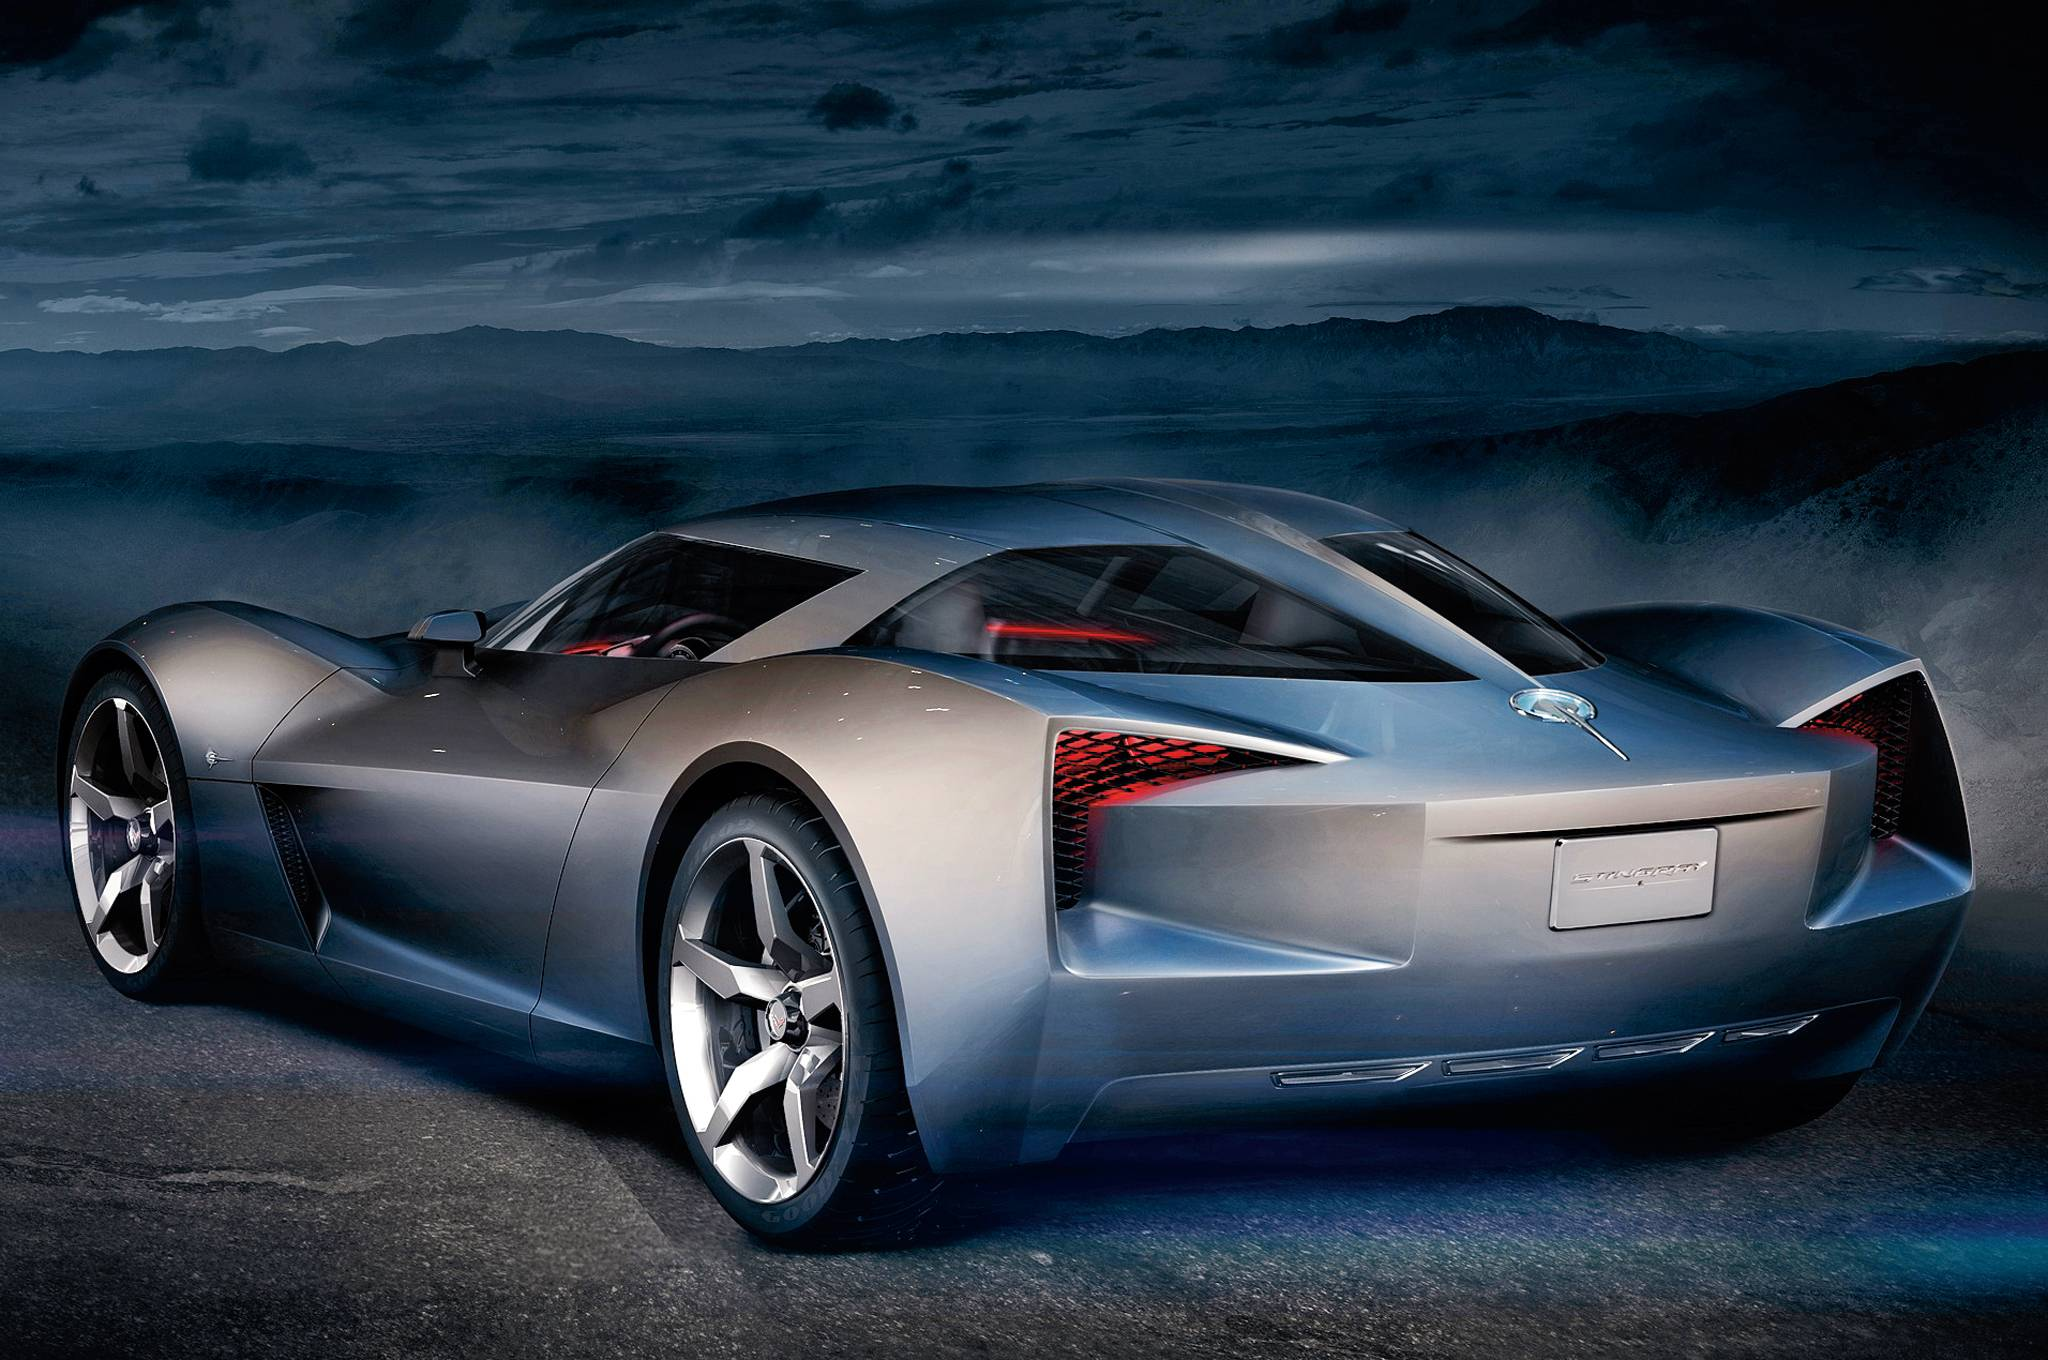 corvette stingray 2015 wallpapers wallpaper cave. Black Bedroom Furniture Sets. Home Design Ideas